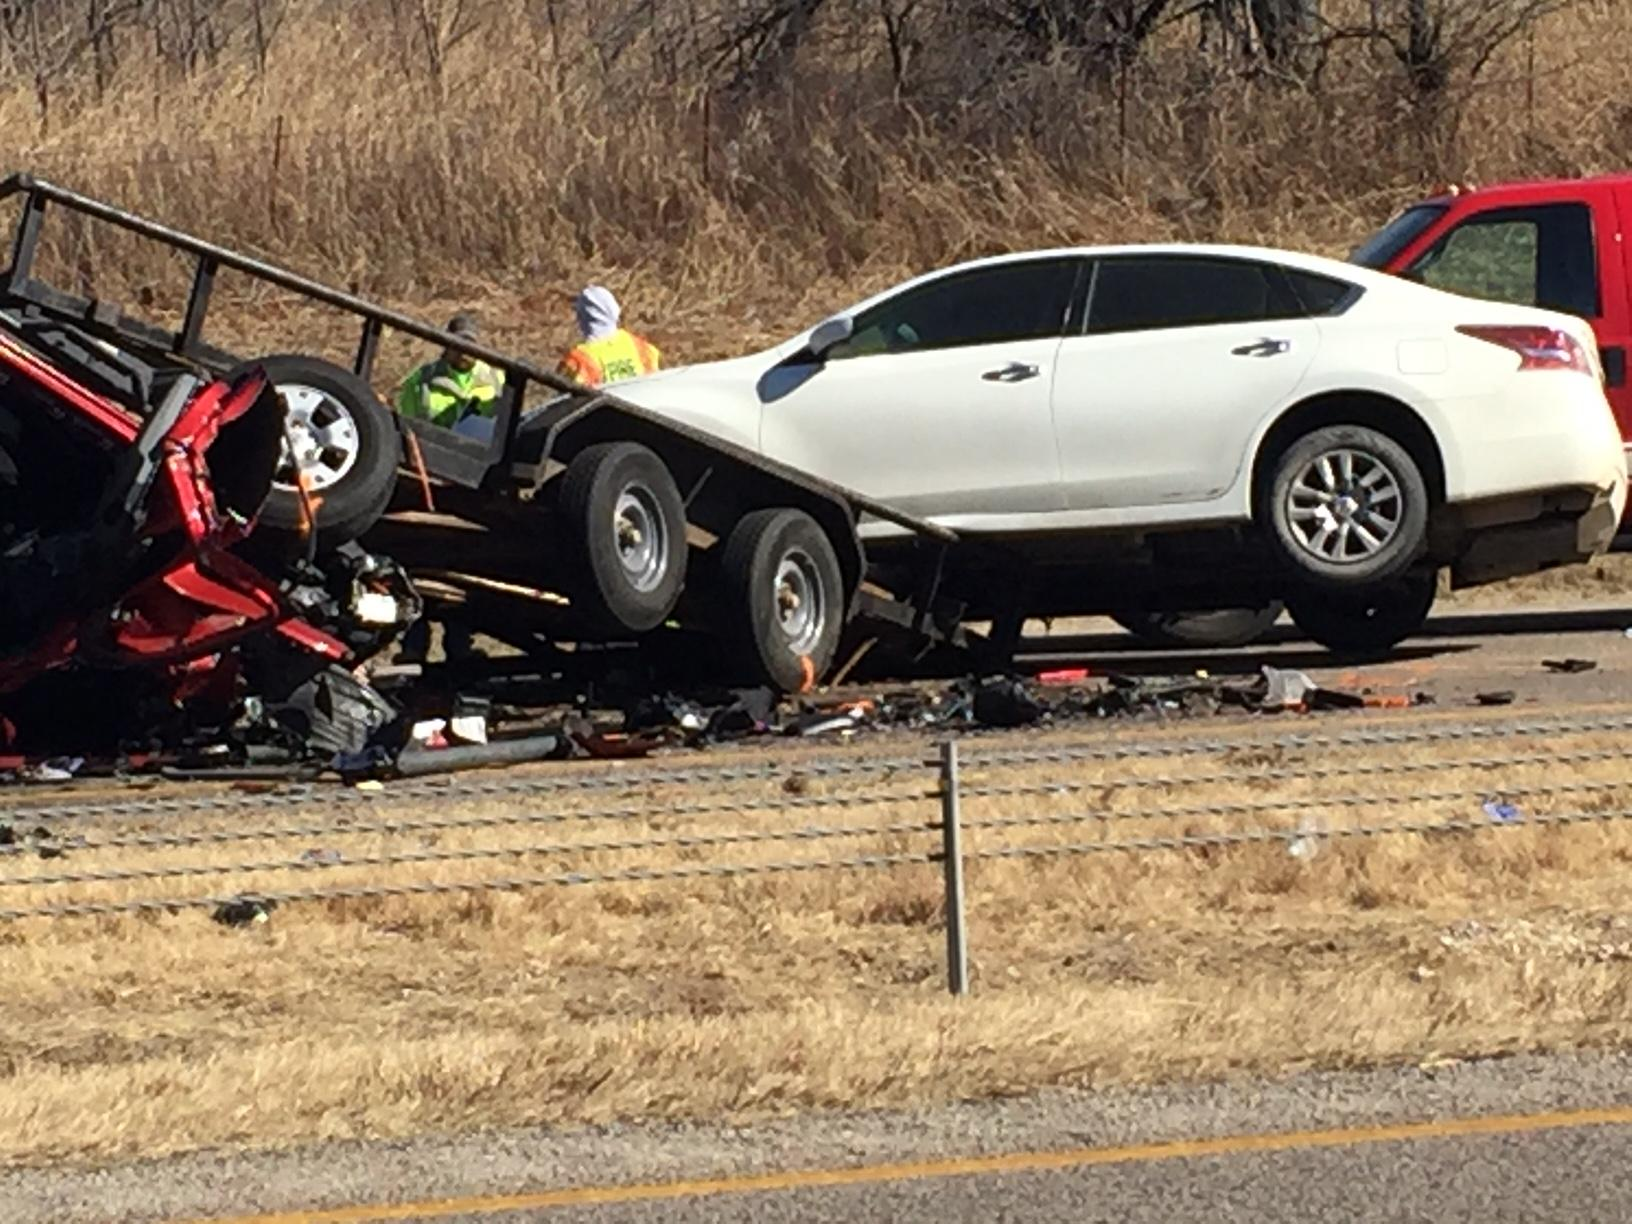 One person died following a crash Jan. 29 on I-35 north of Goldsby. (KOKH/Scott Noland)